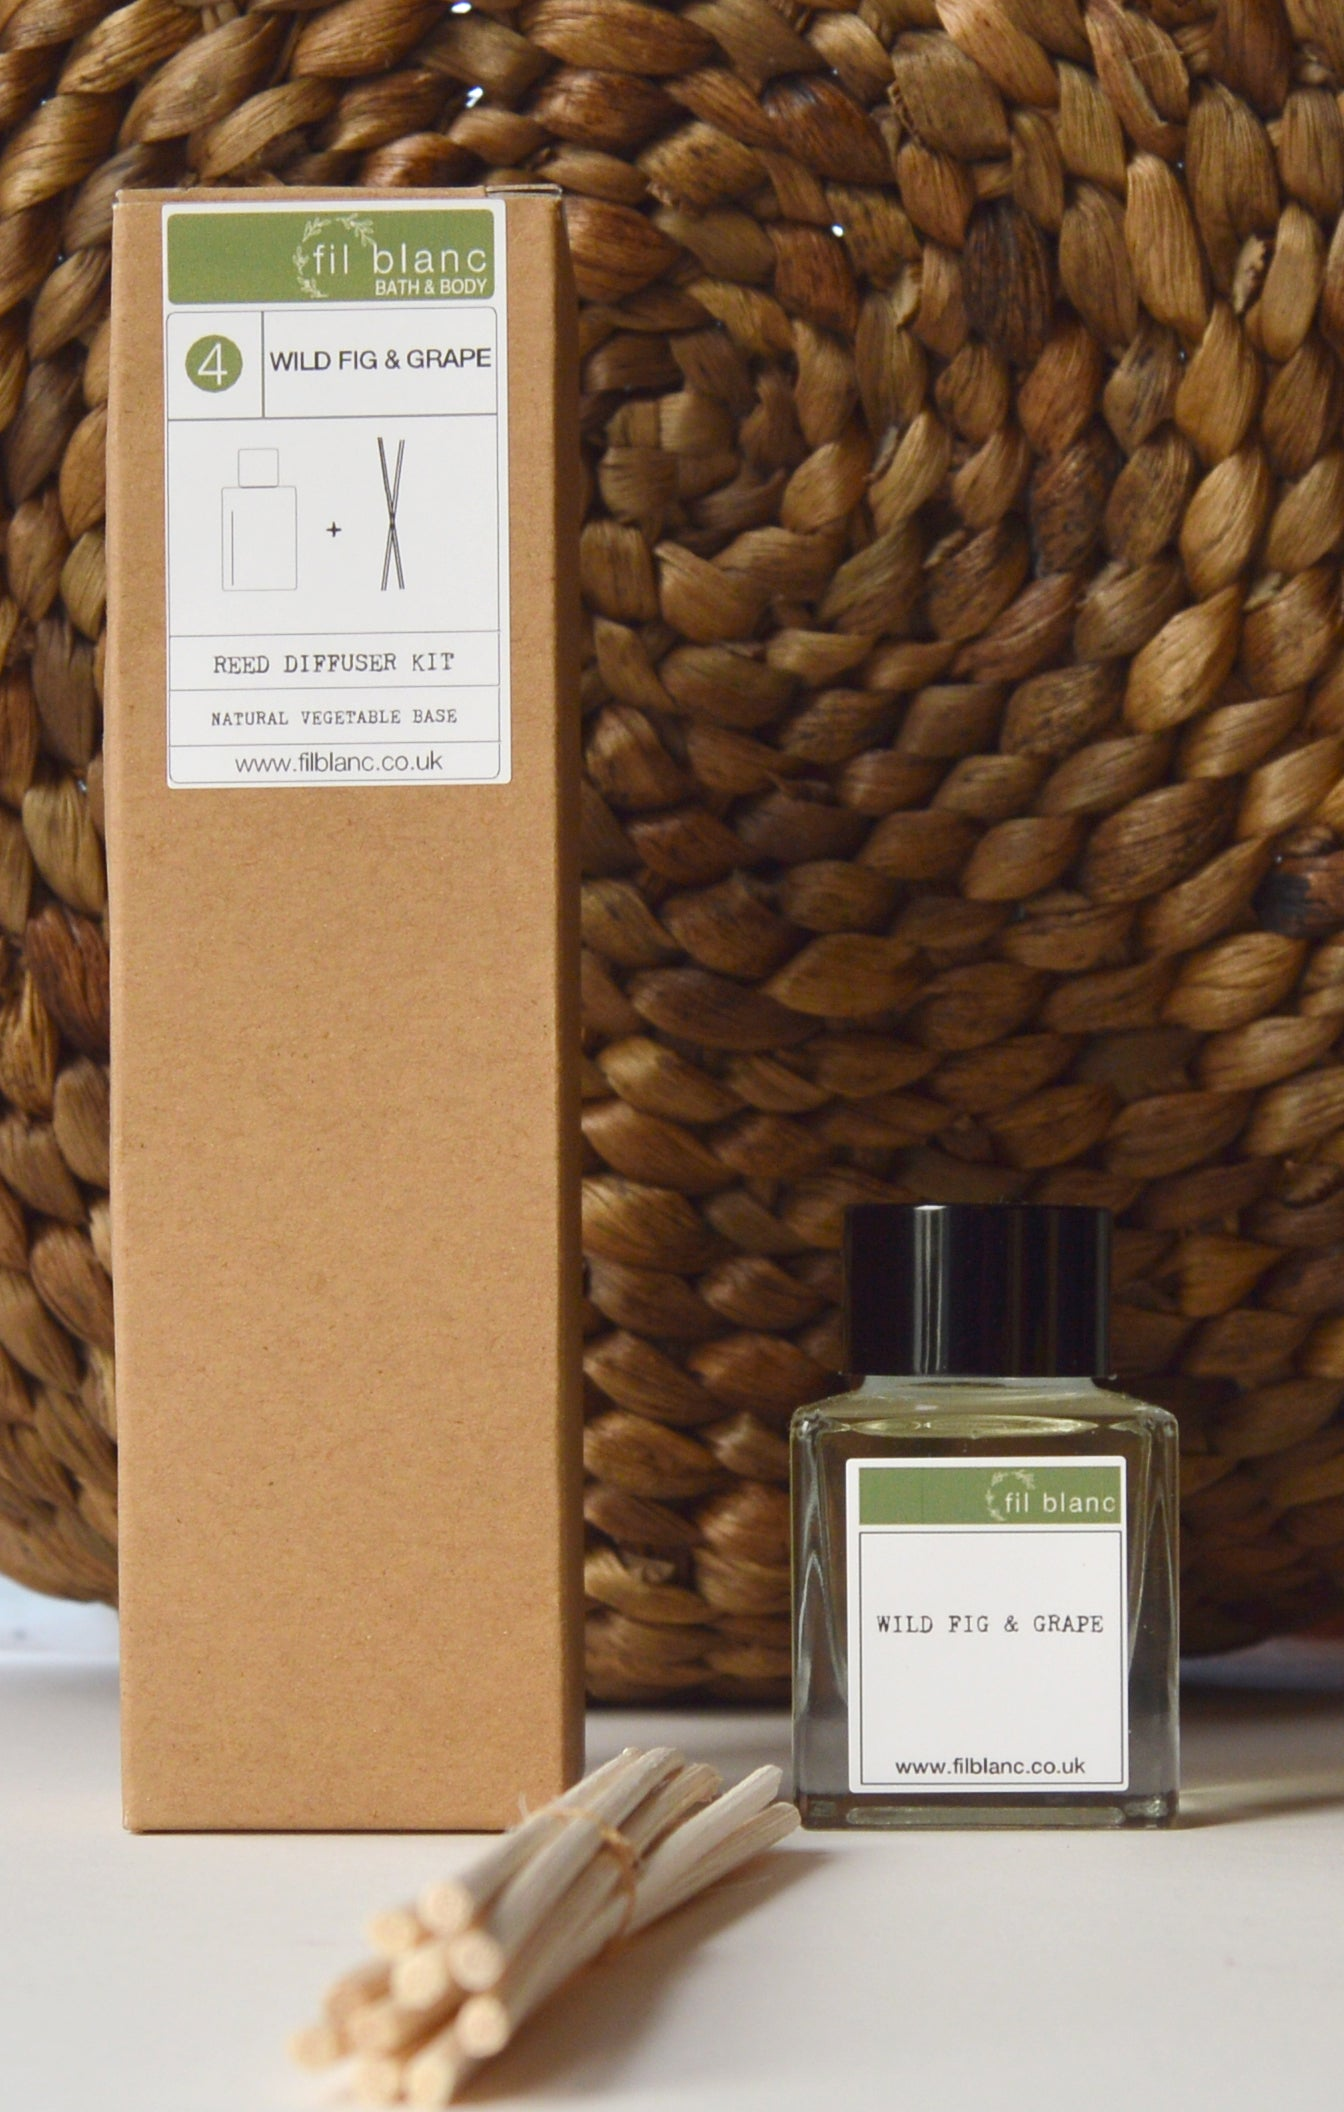 Wild Fig & Grape Reed Diffuser Kit